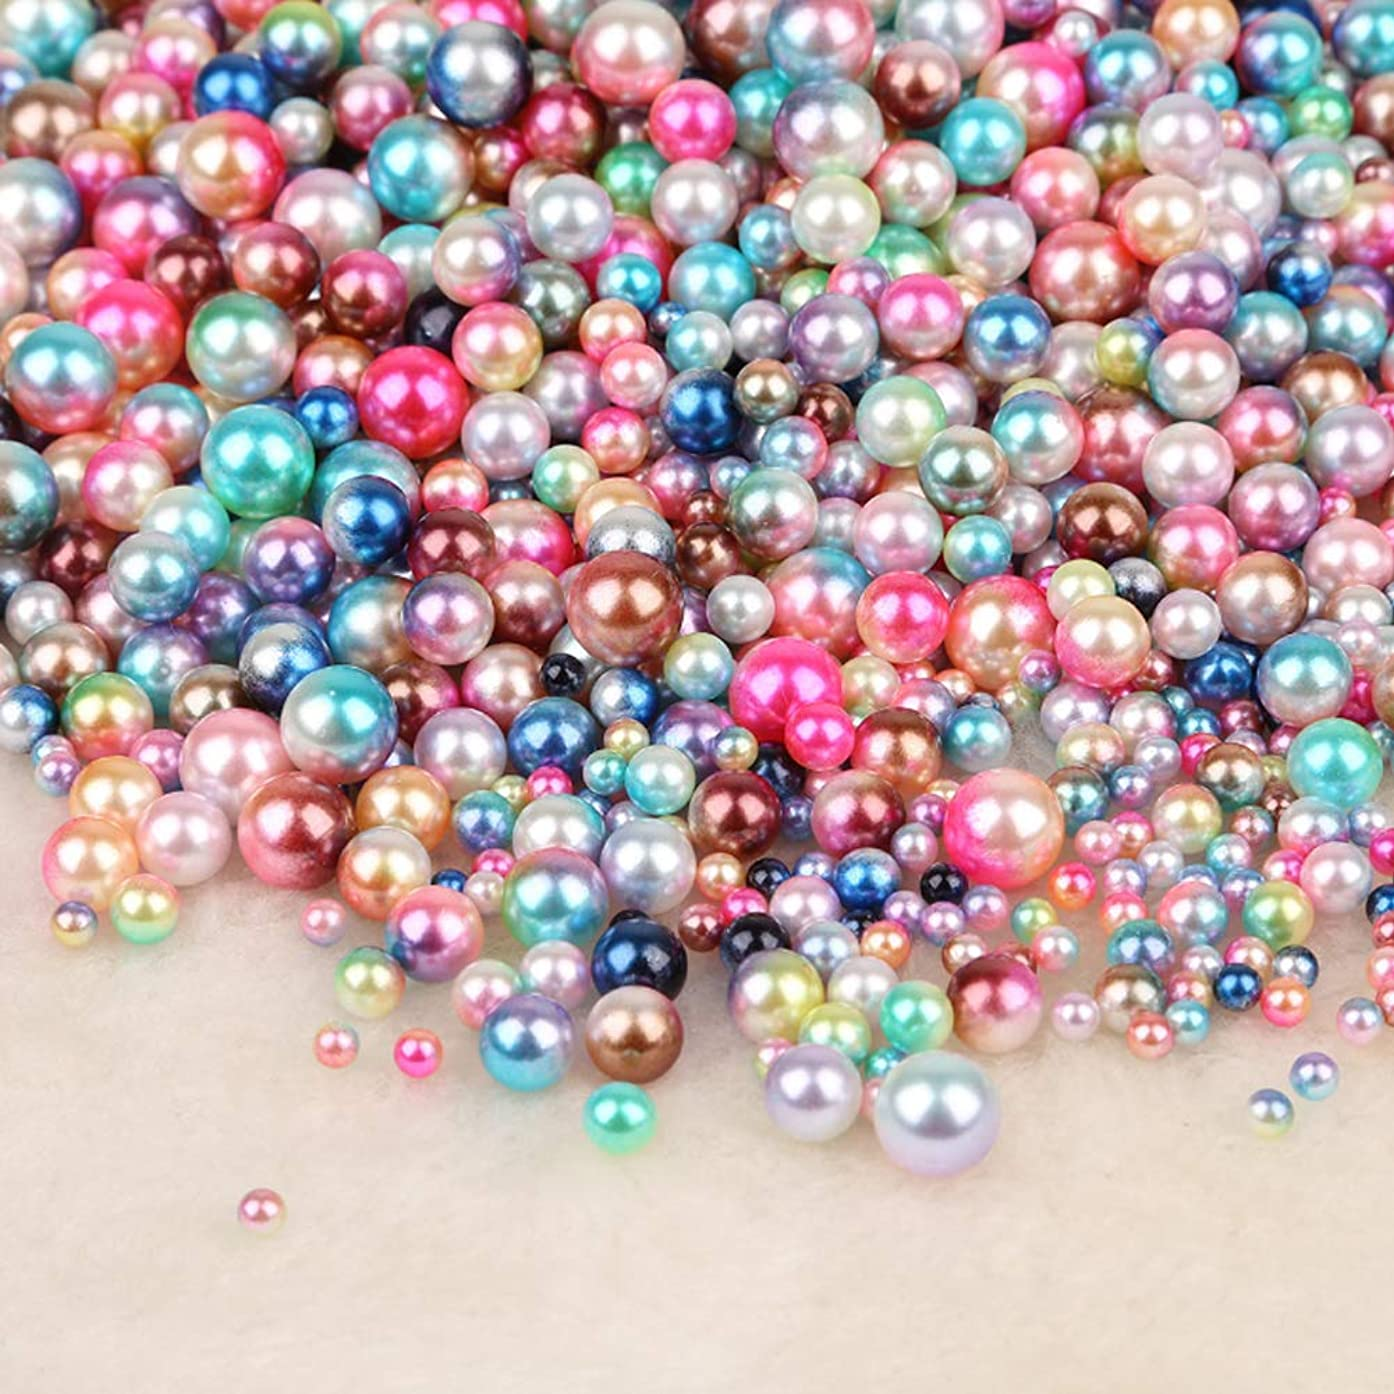 ABS Colorful Acrylic Round Beads Imitation Faux Pearls String NO Hole 4-10MM Mixed Color for Craft DIY Jewelry Making (8MM Mix Color(About 450pcs))